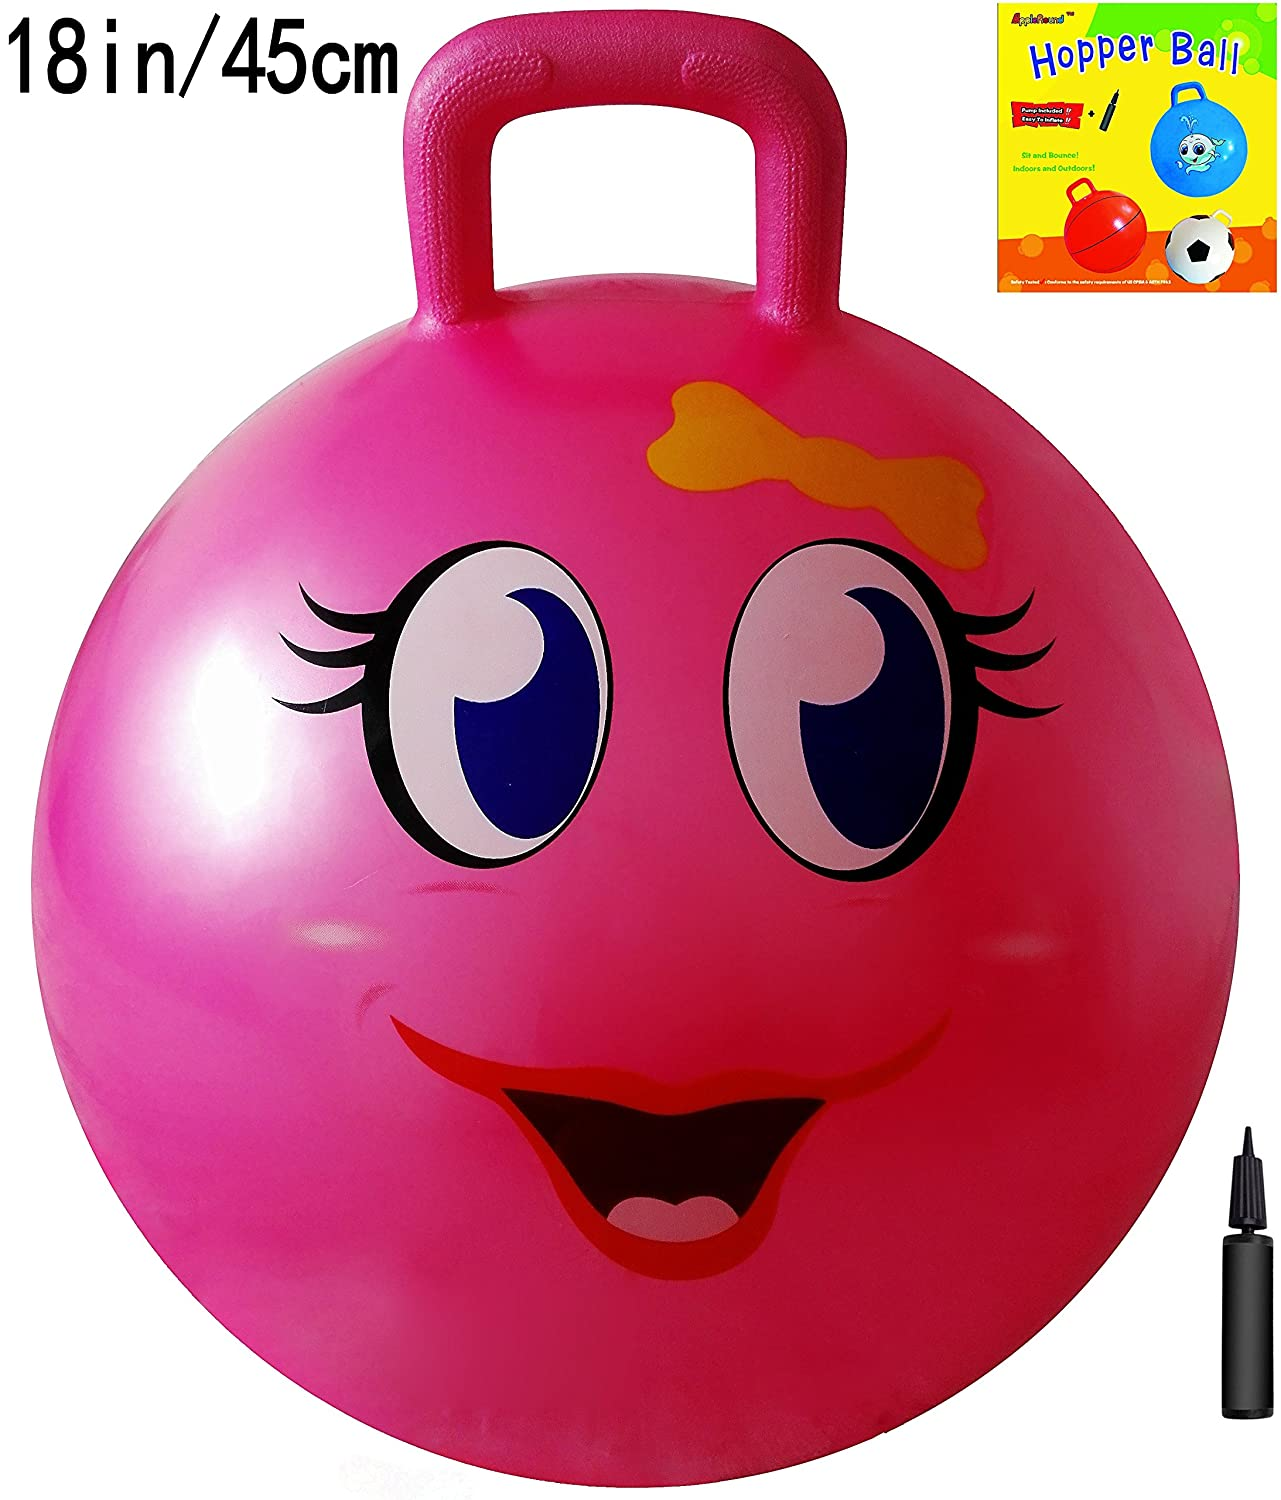 AppleRound Space Hopper Ball with Pump 18in 45cm Diameter for Ages 3 6 Hop Ball Kangaroo Bouncer Hoppity Hop